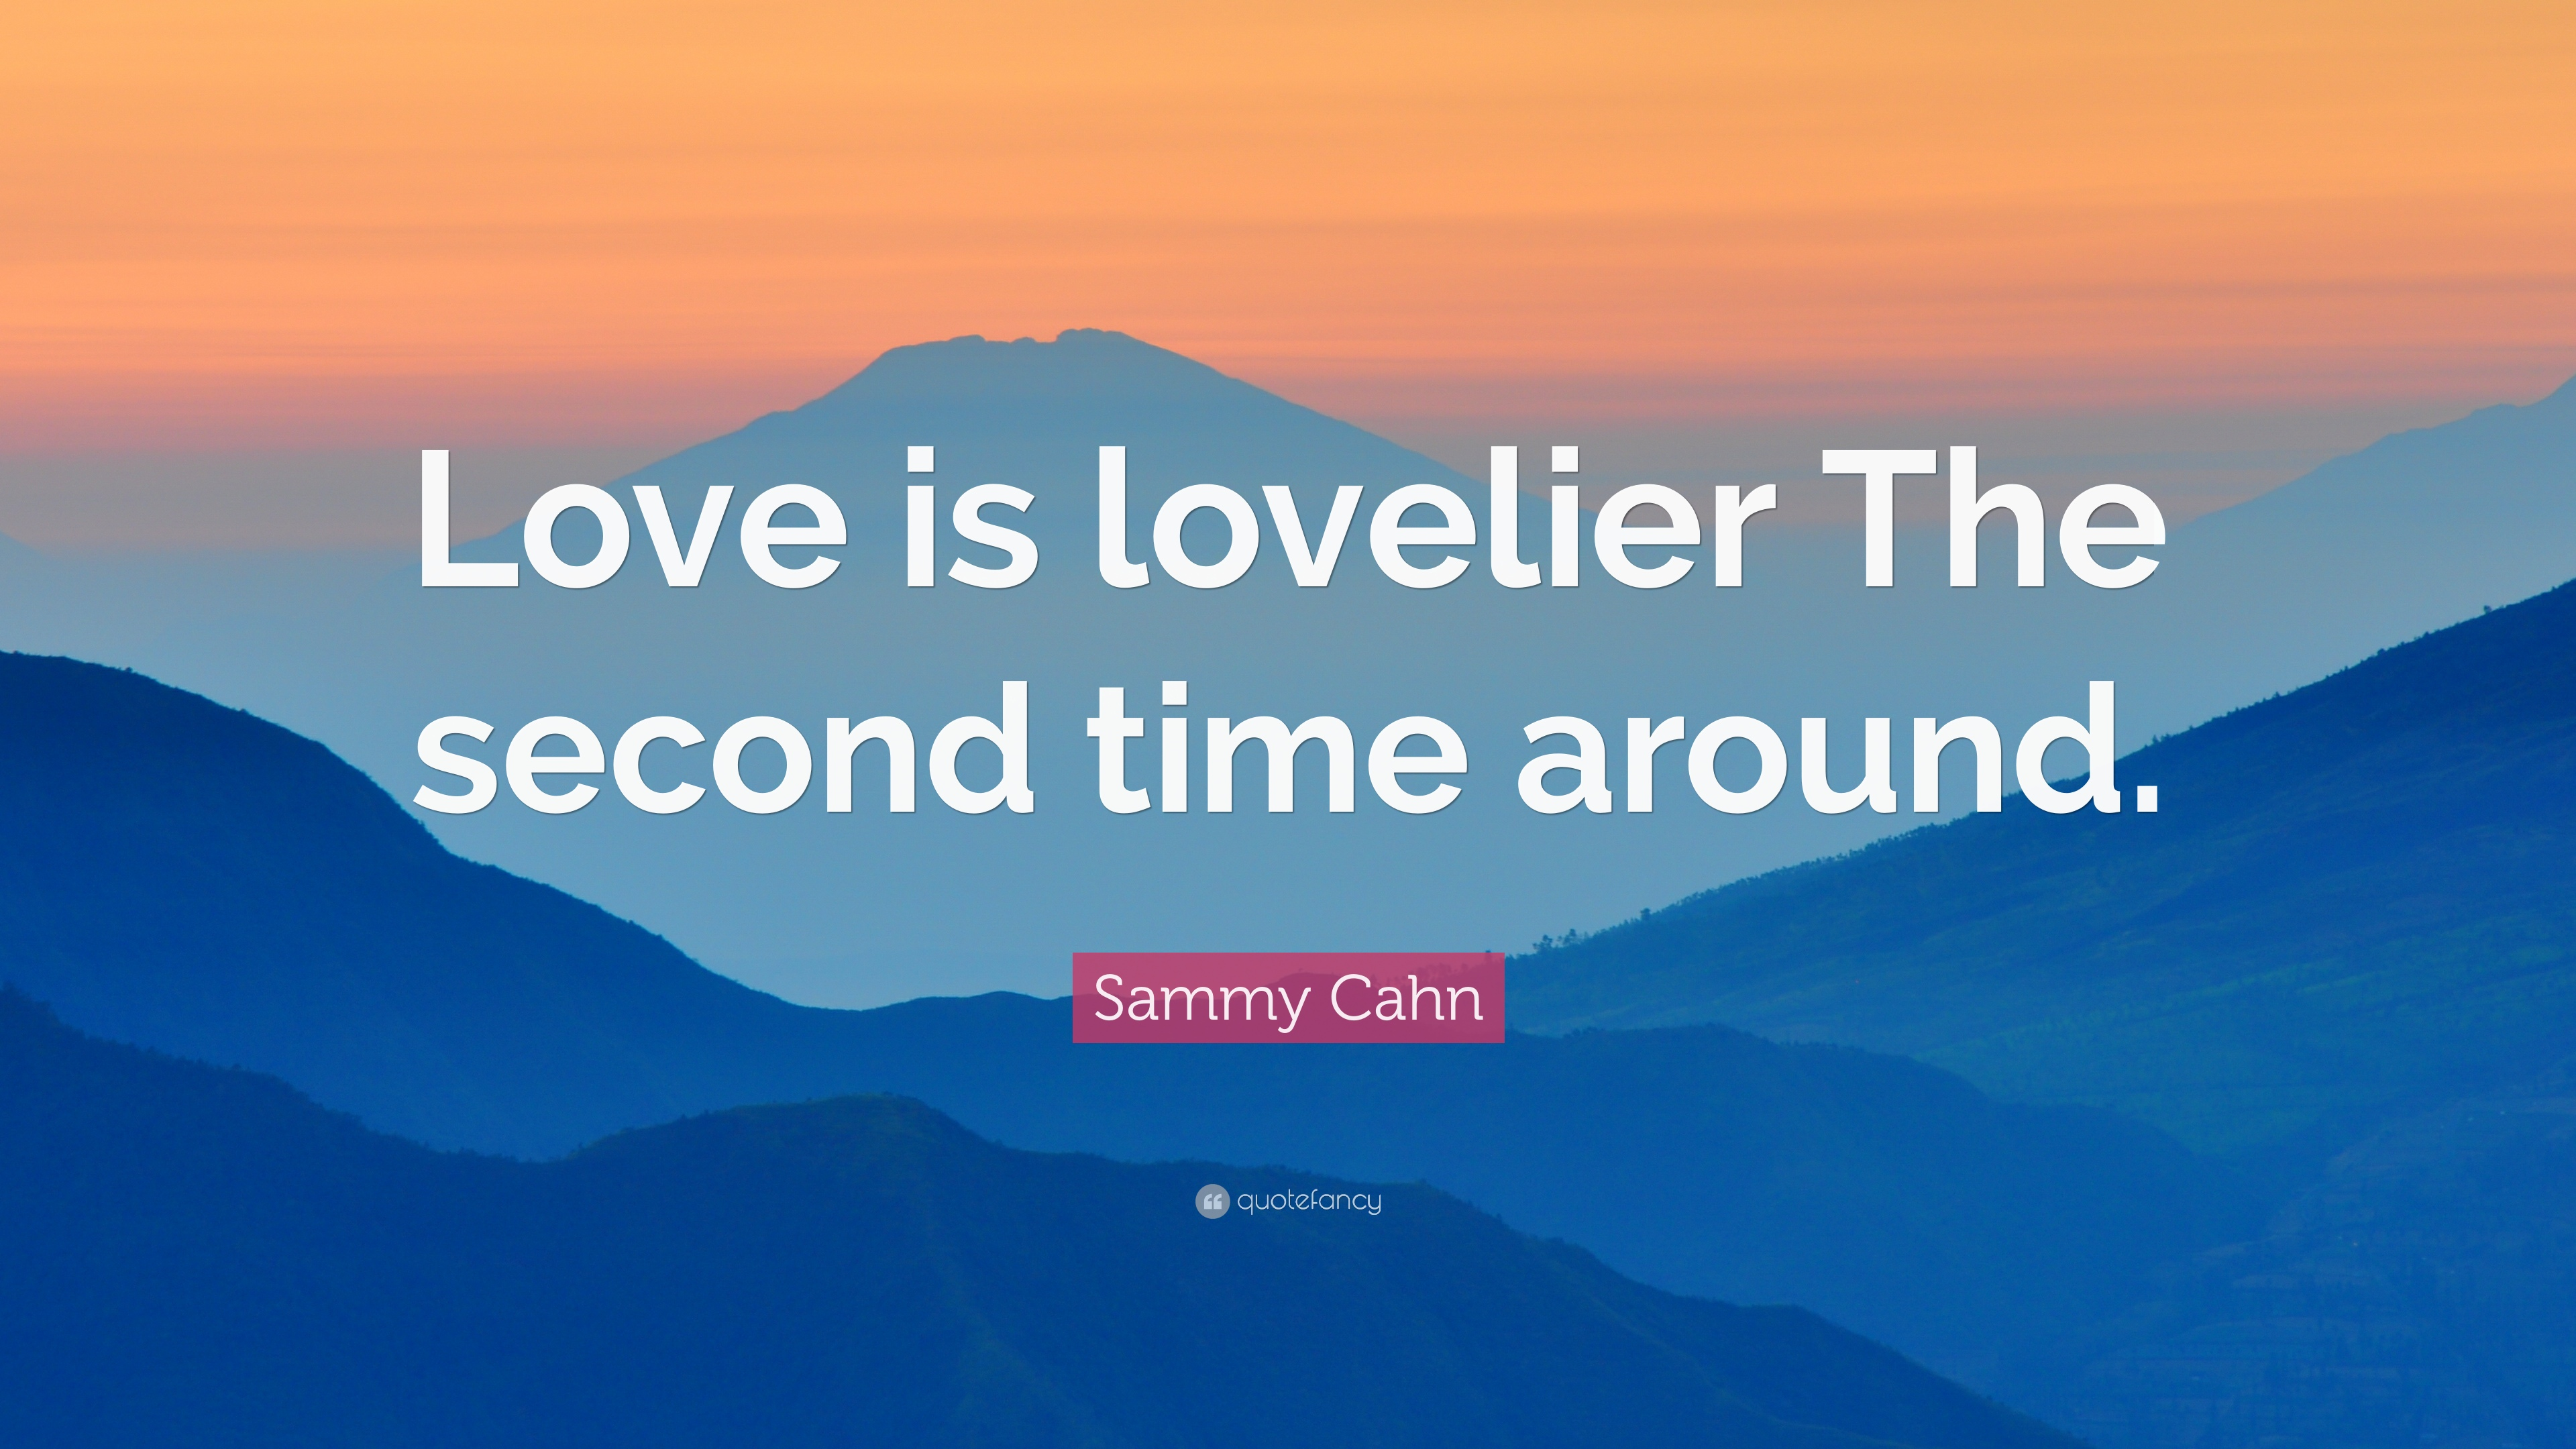 "Sammy Cahn Quote ""Love is lovelier The second time around """